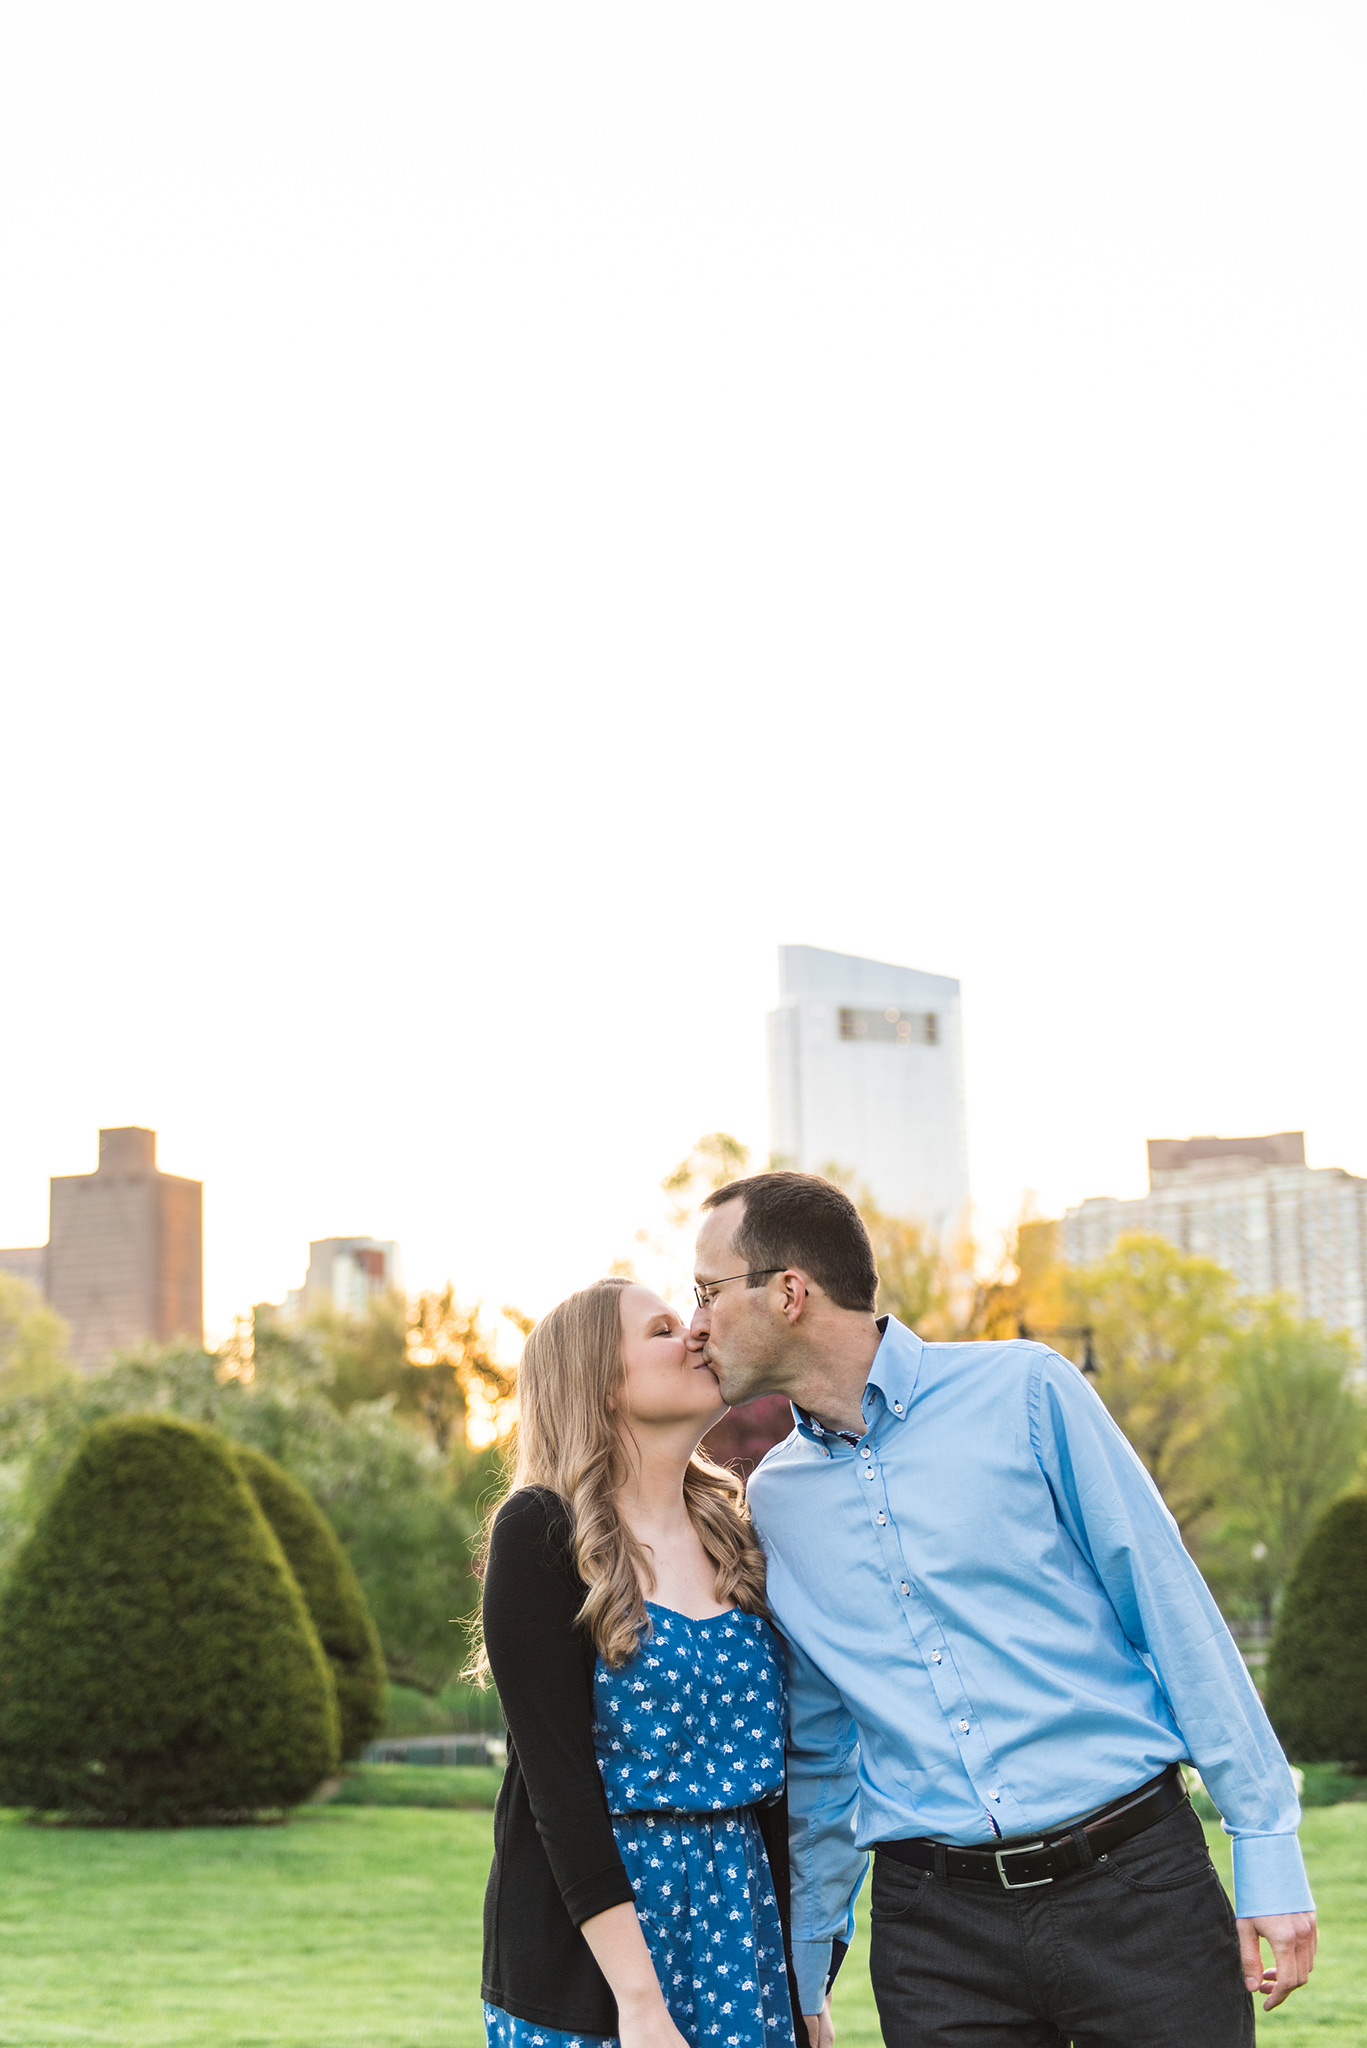 Classic + Modern Boston Public Garden, Beacon Hill, and Downtown Coffee Shop Sunrise Engagement Session   Jessica and Thomas   Lorna Stell   Photographer   Boston MA